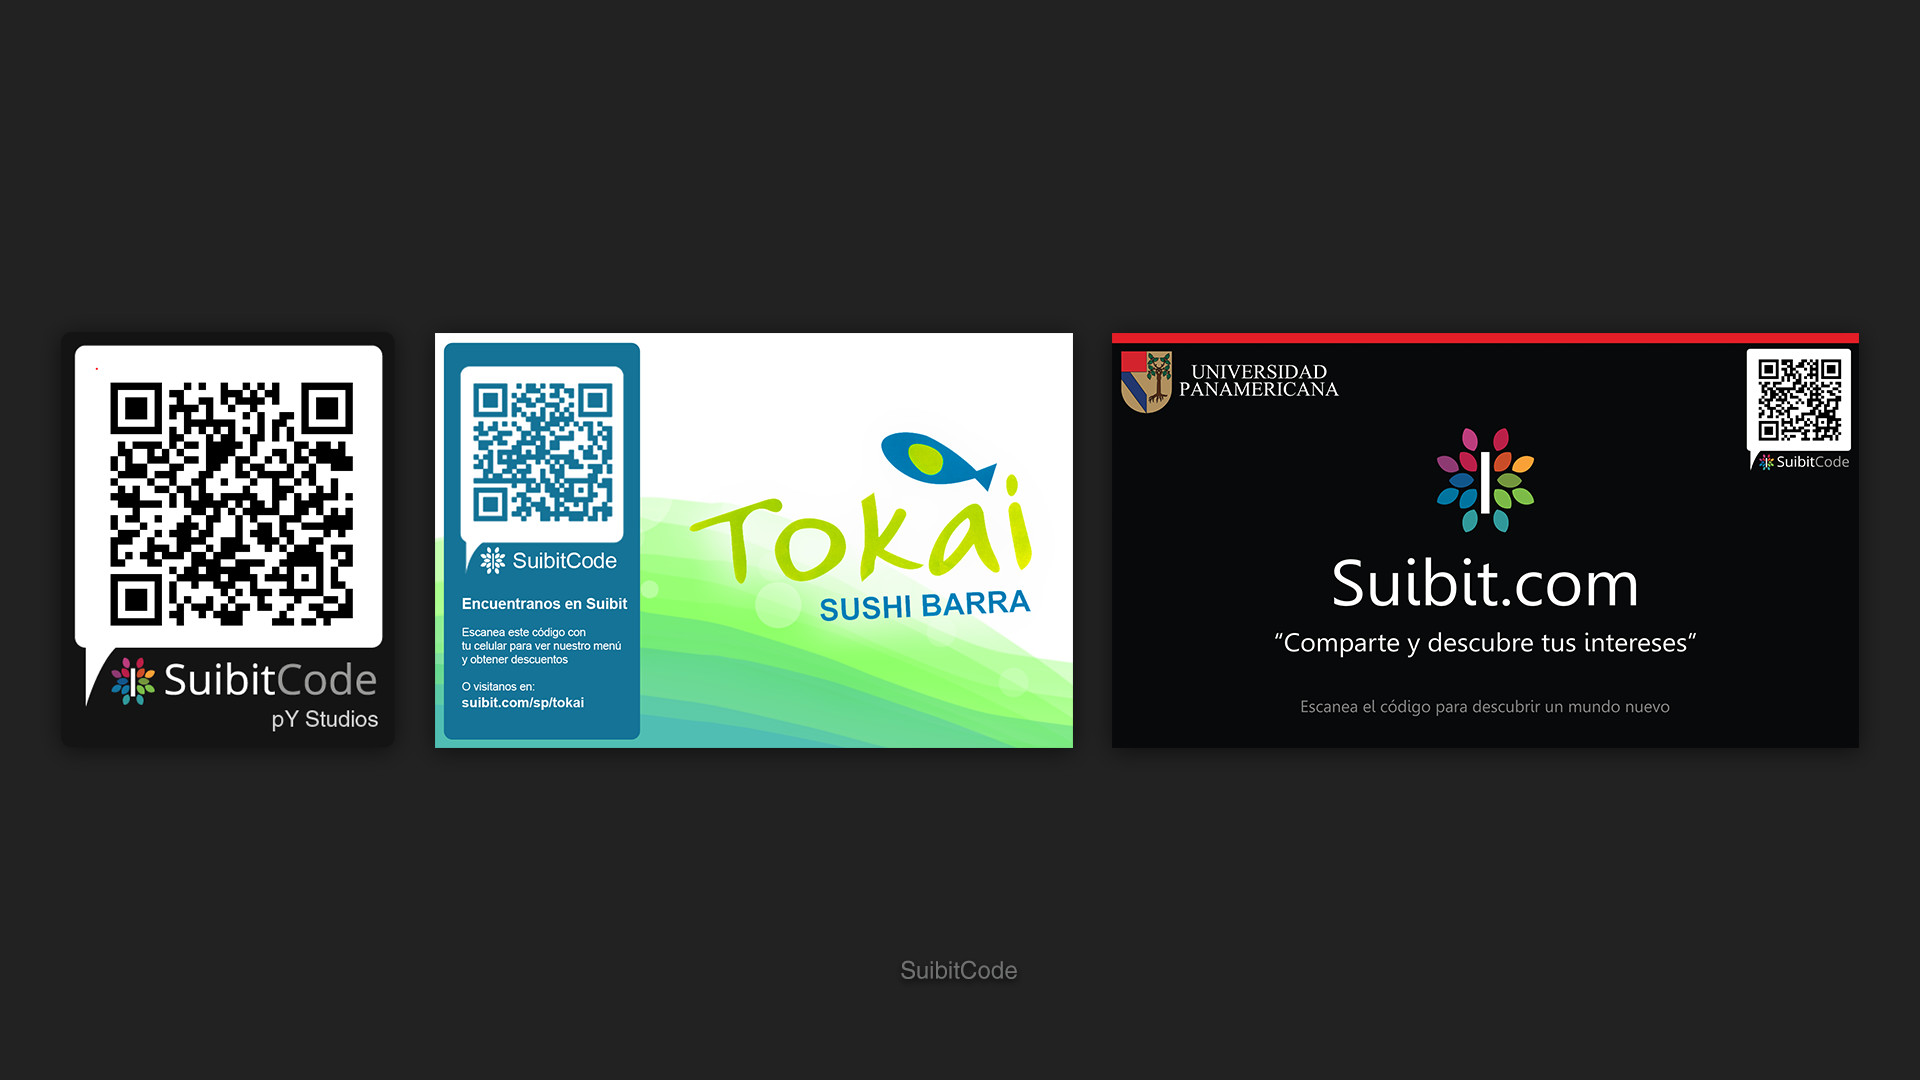 The SuibitCode was a QR Code that offered promotions on our site when scanned.